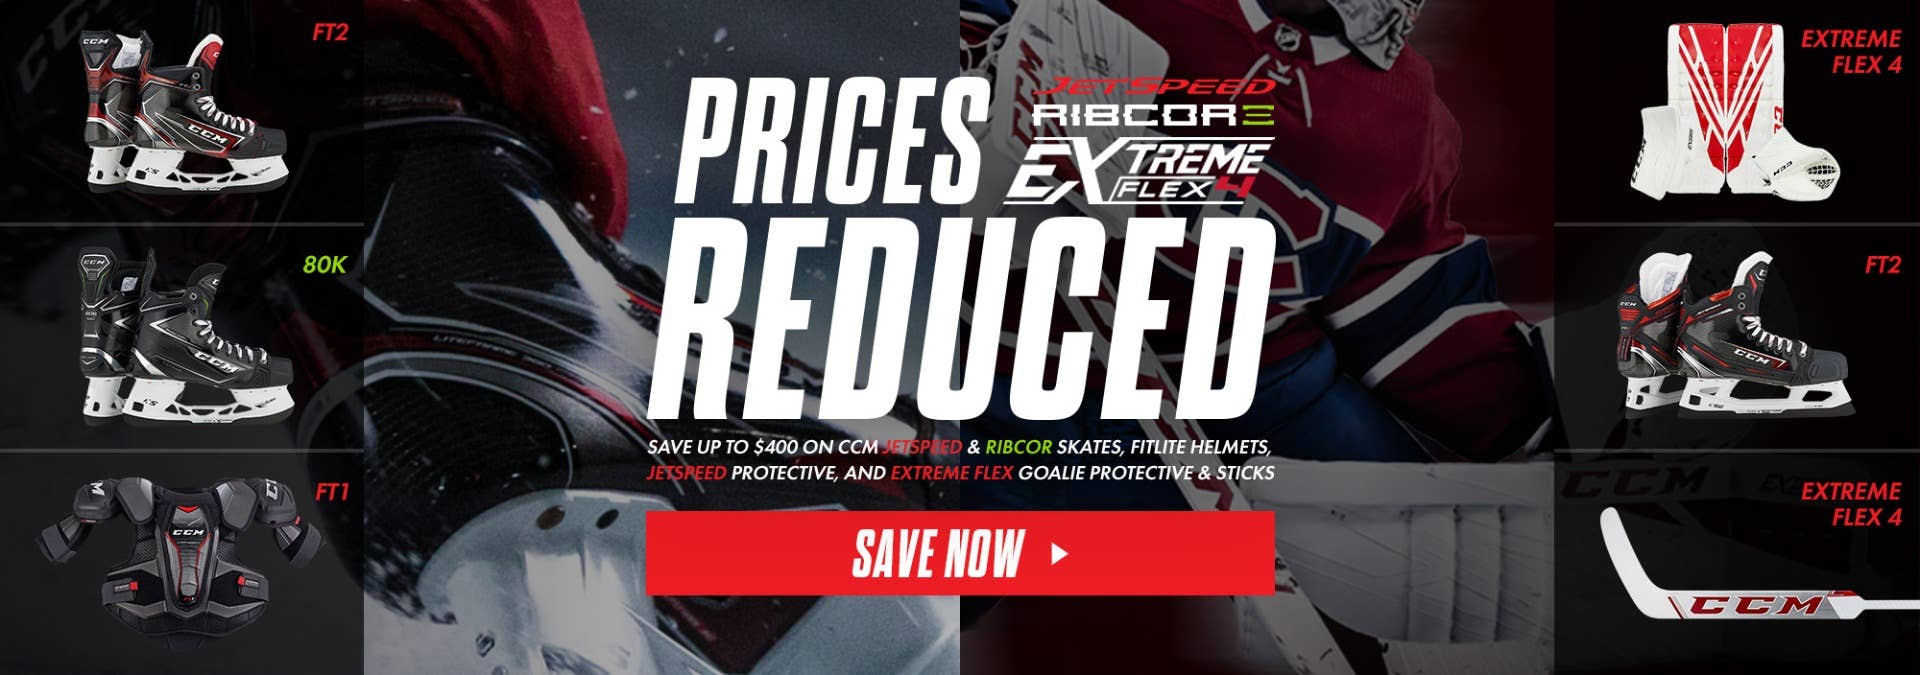 Save up to $400 on CCM JetSpeed & RibCor skates, Fitlite helmets, JetSpeed Protective, and Extreme Flex goalie protective & sticks.